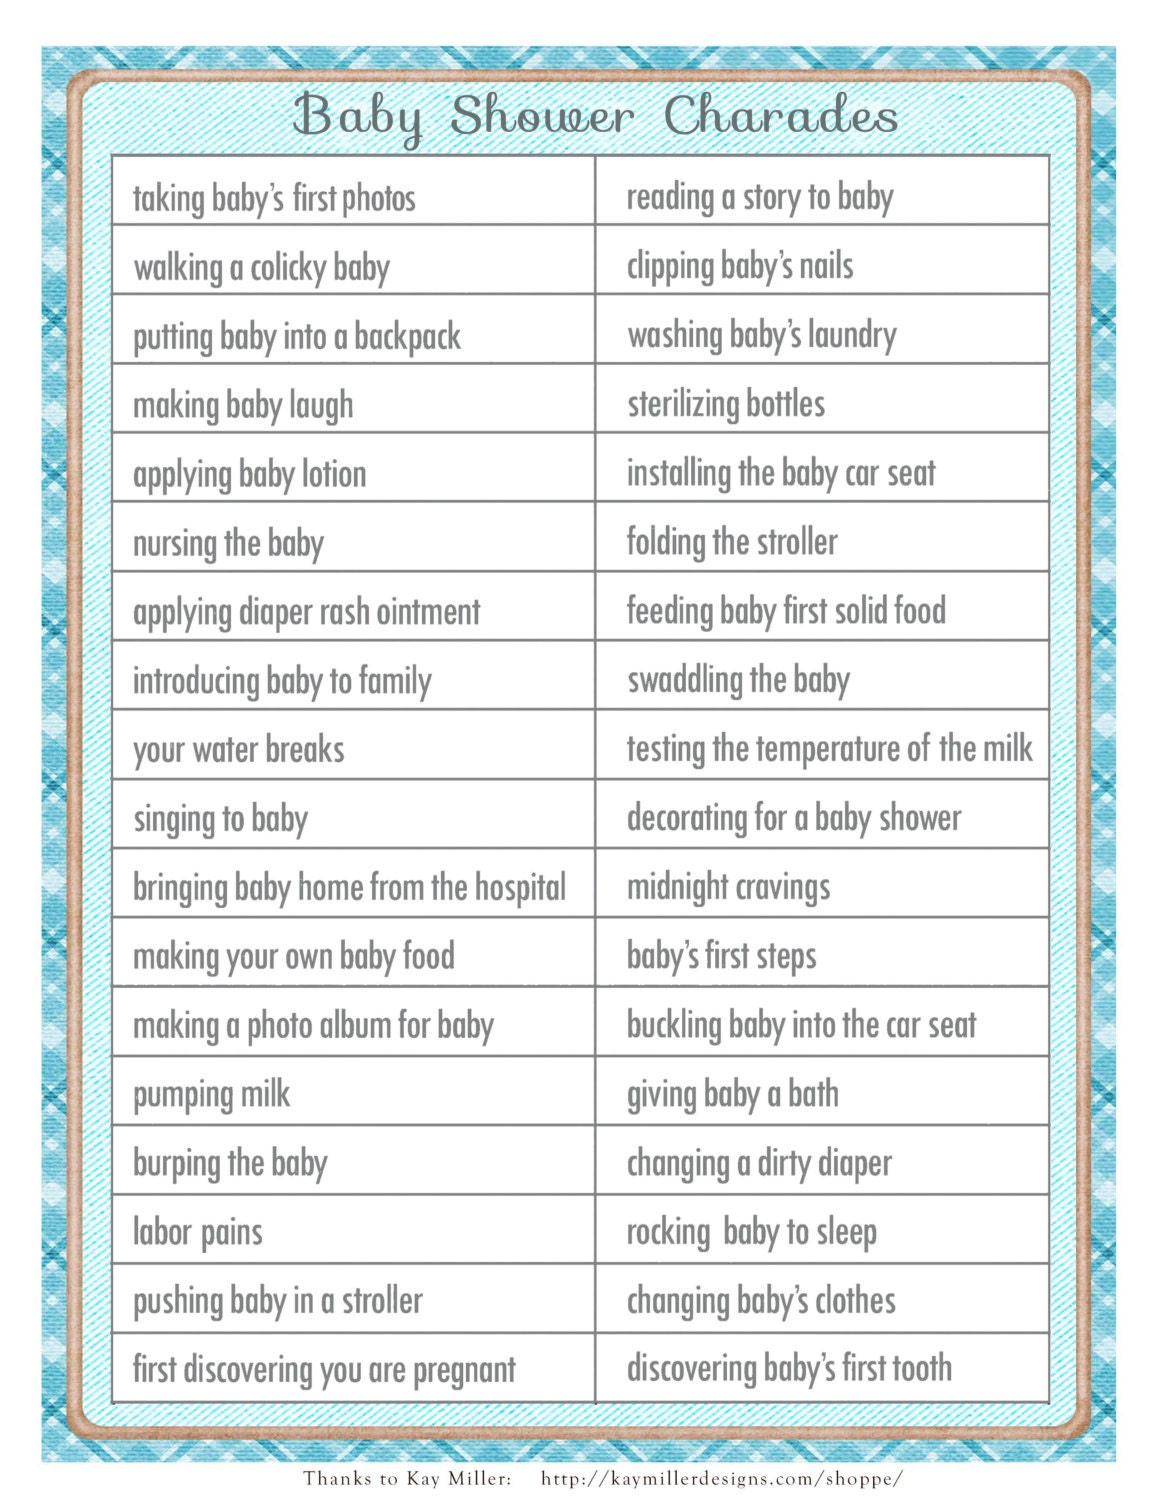 CHARADES baby shower game in a vintage style with blue